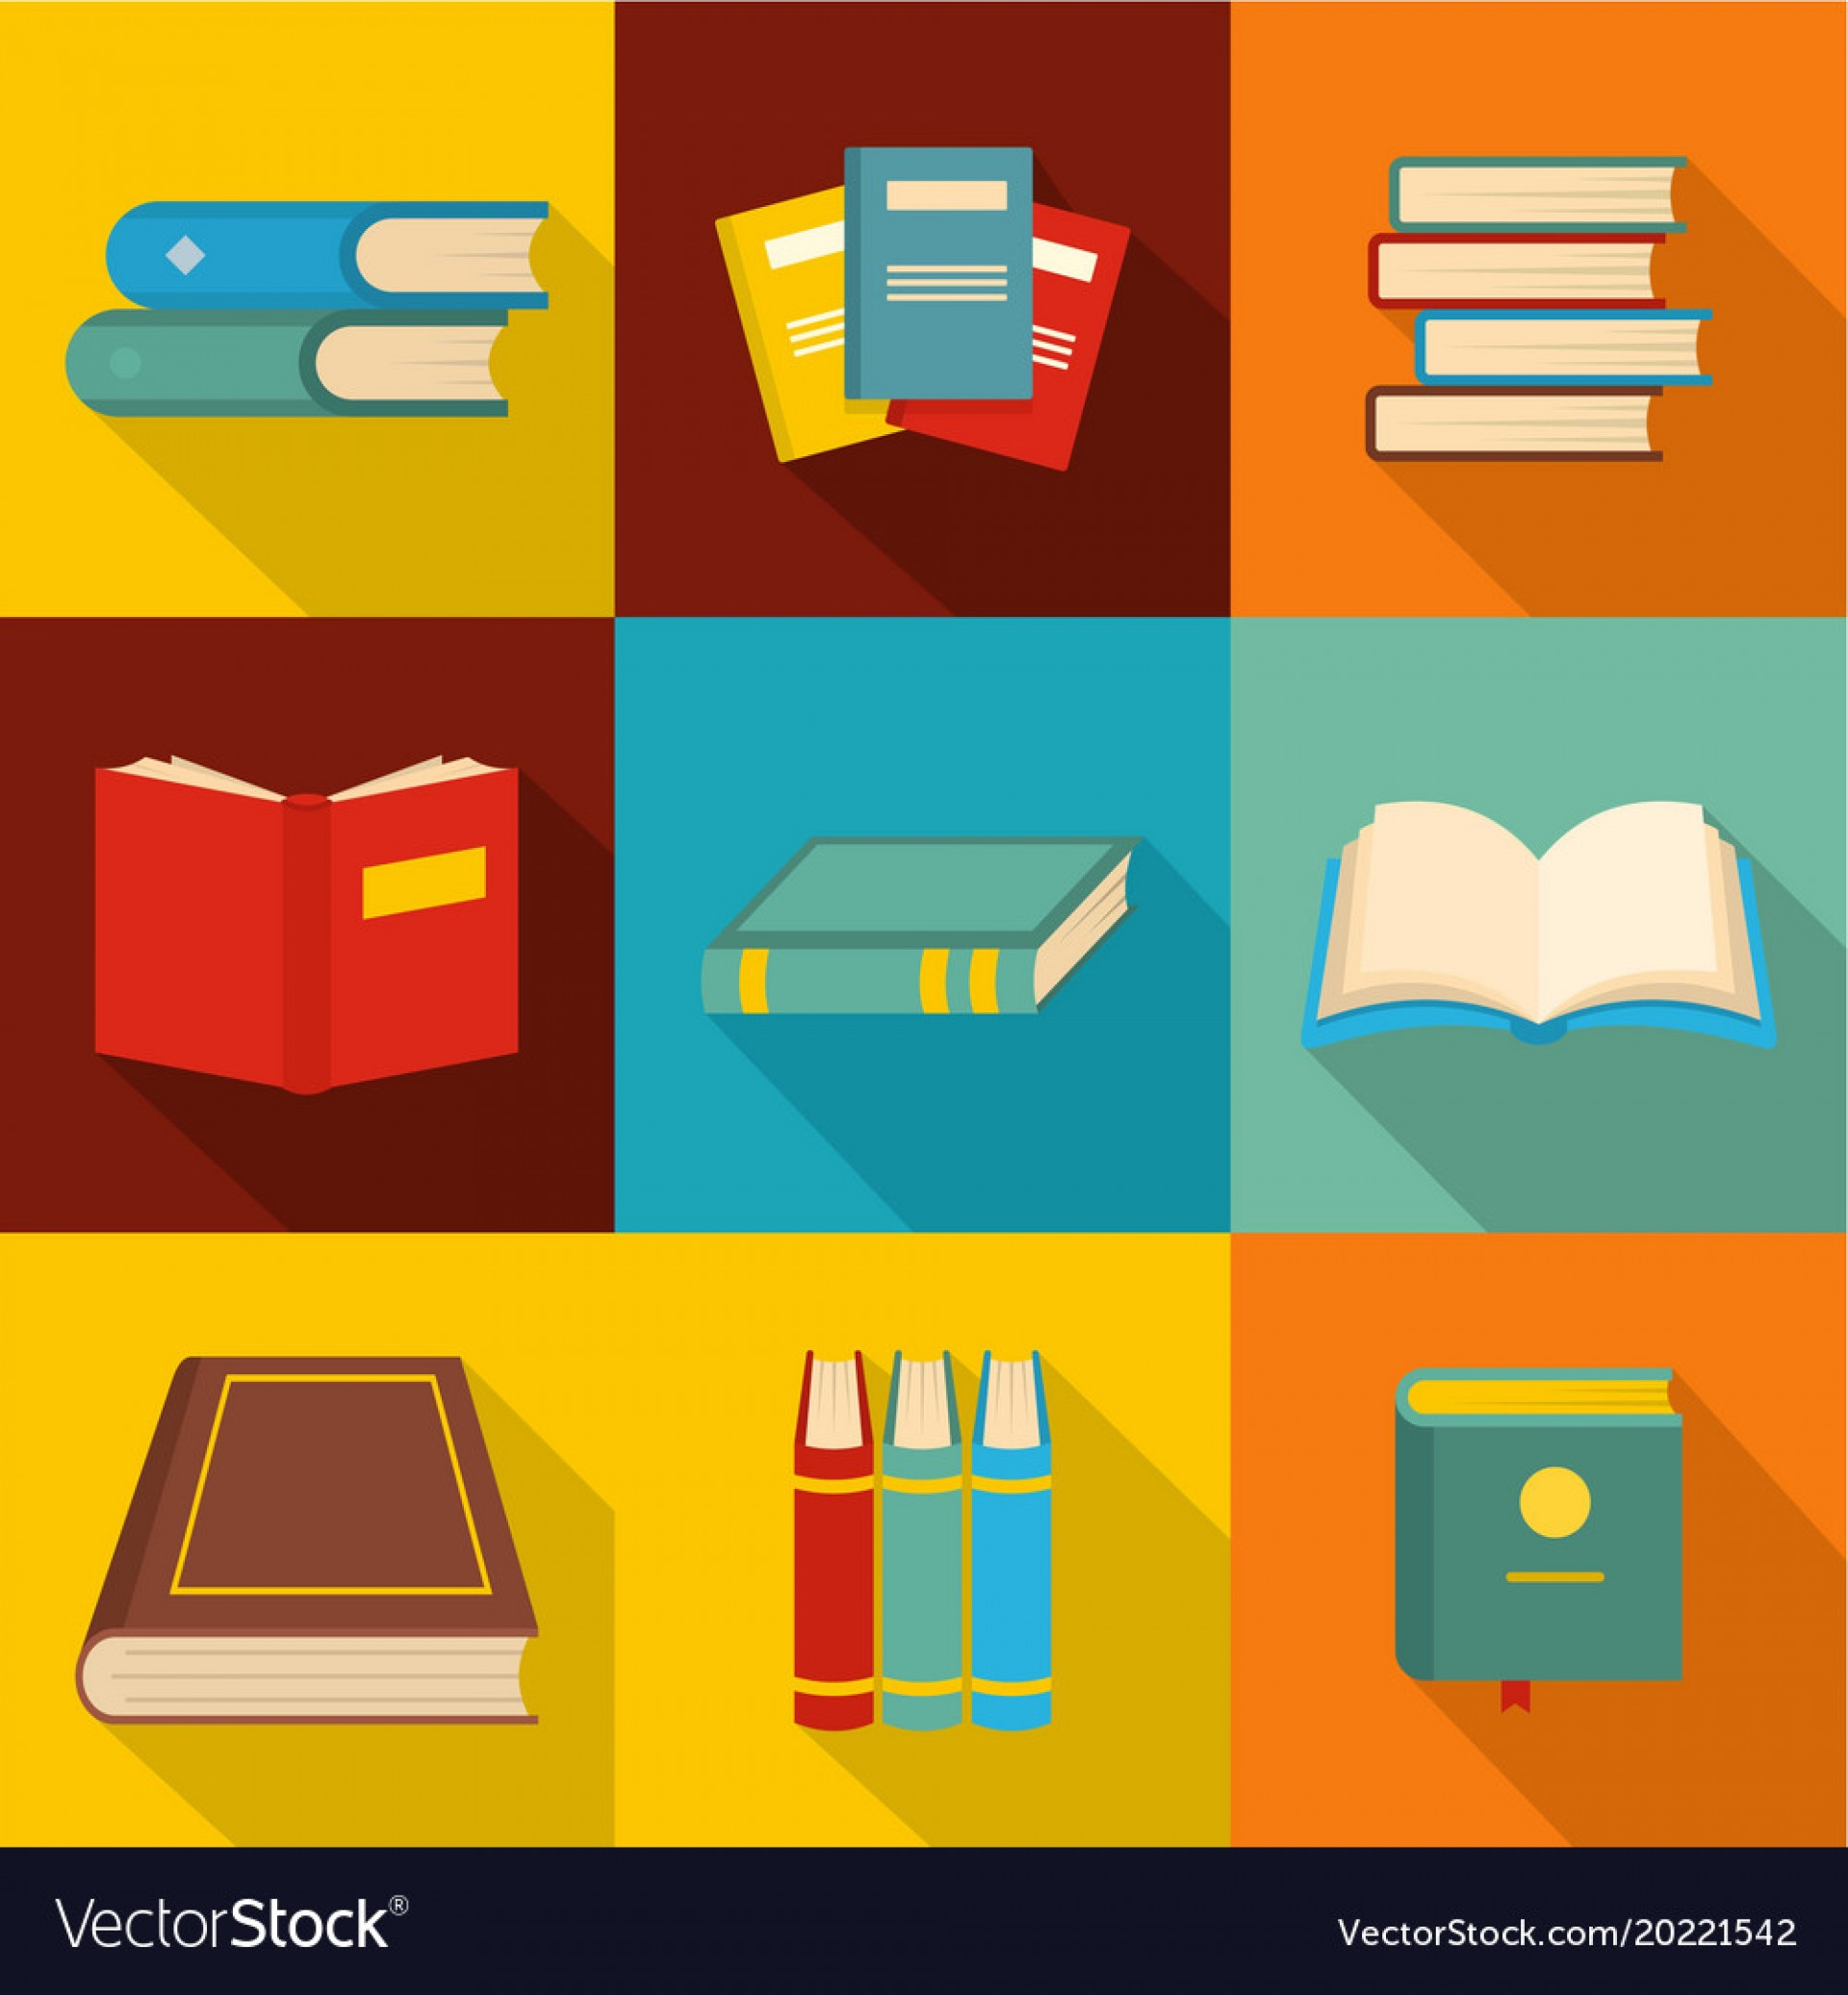 023 Research Paper Icons Set Flat Style Vector Beautiful Free Online Publication Freedom Of Speech 1920